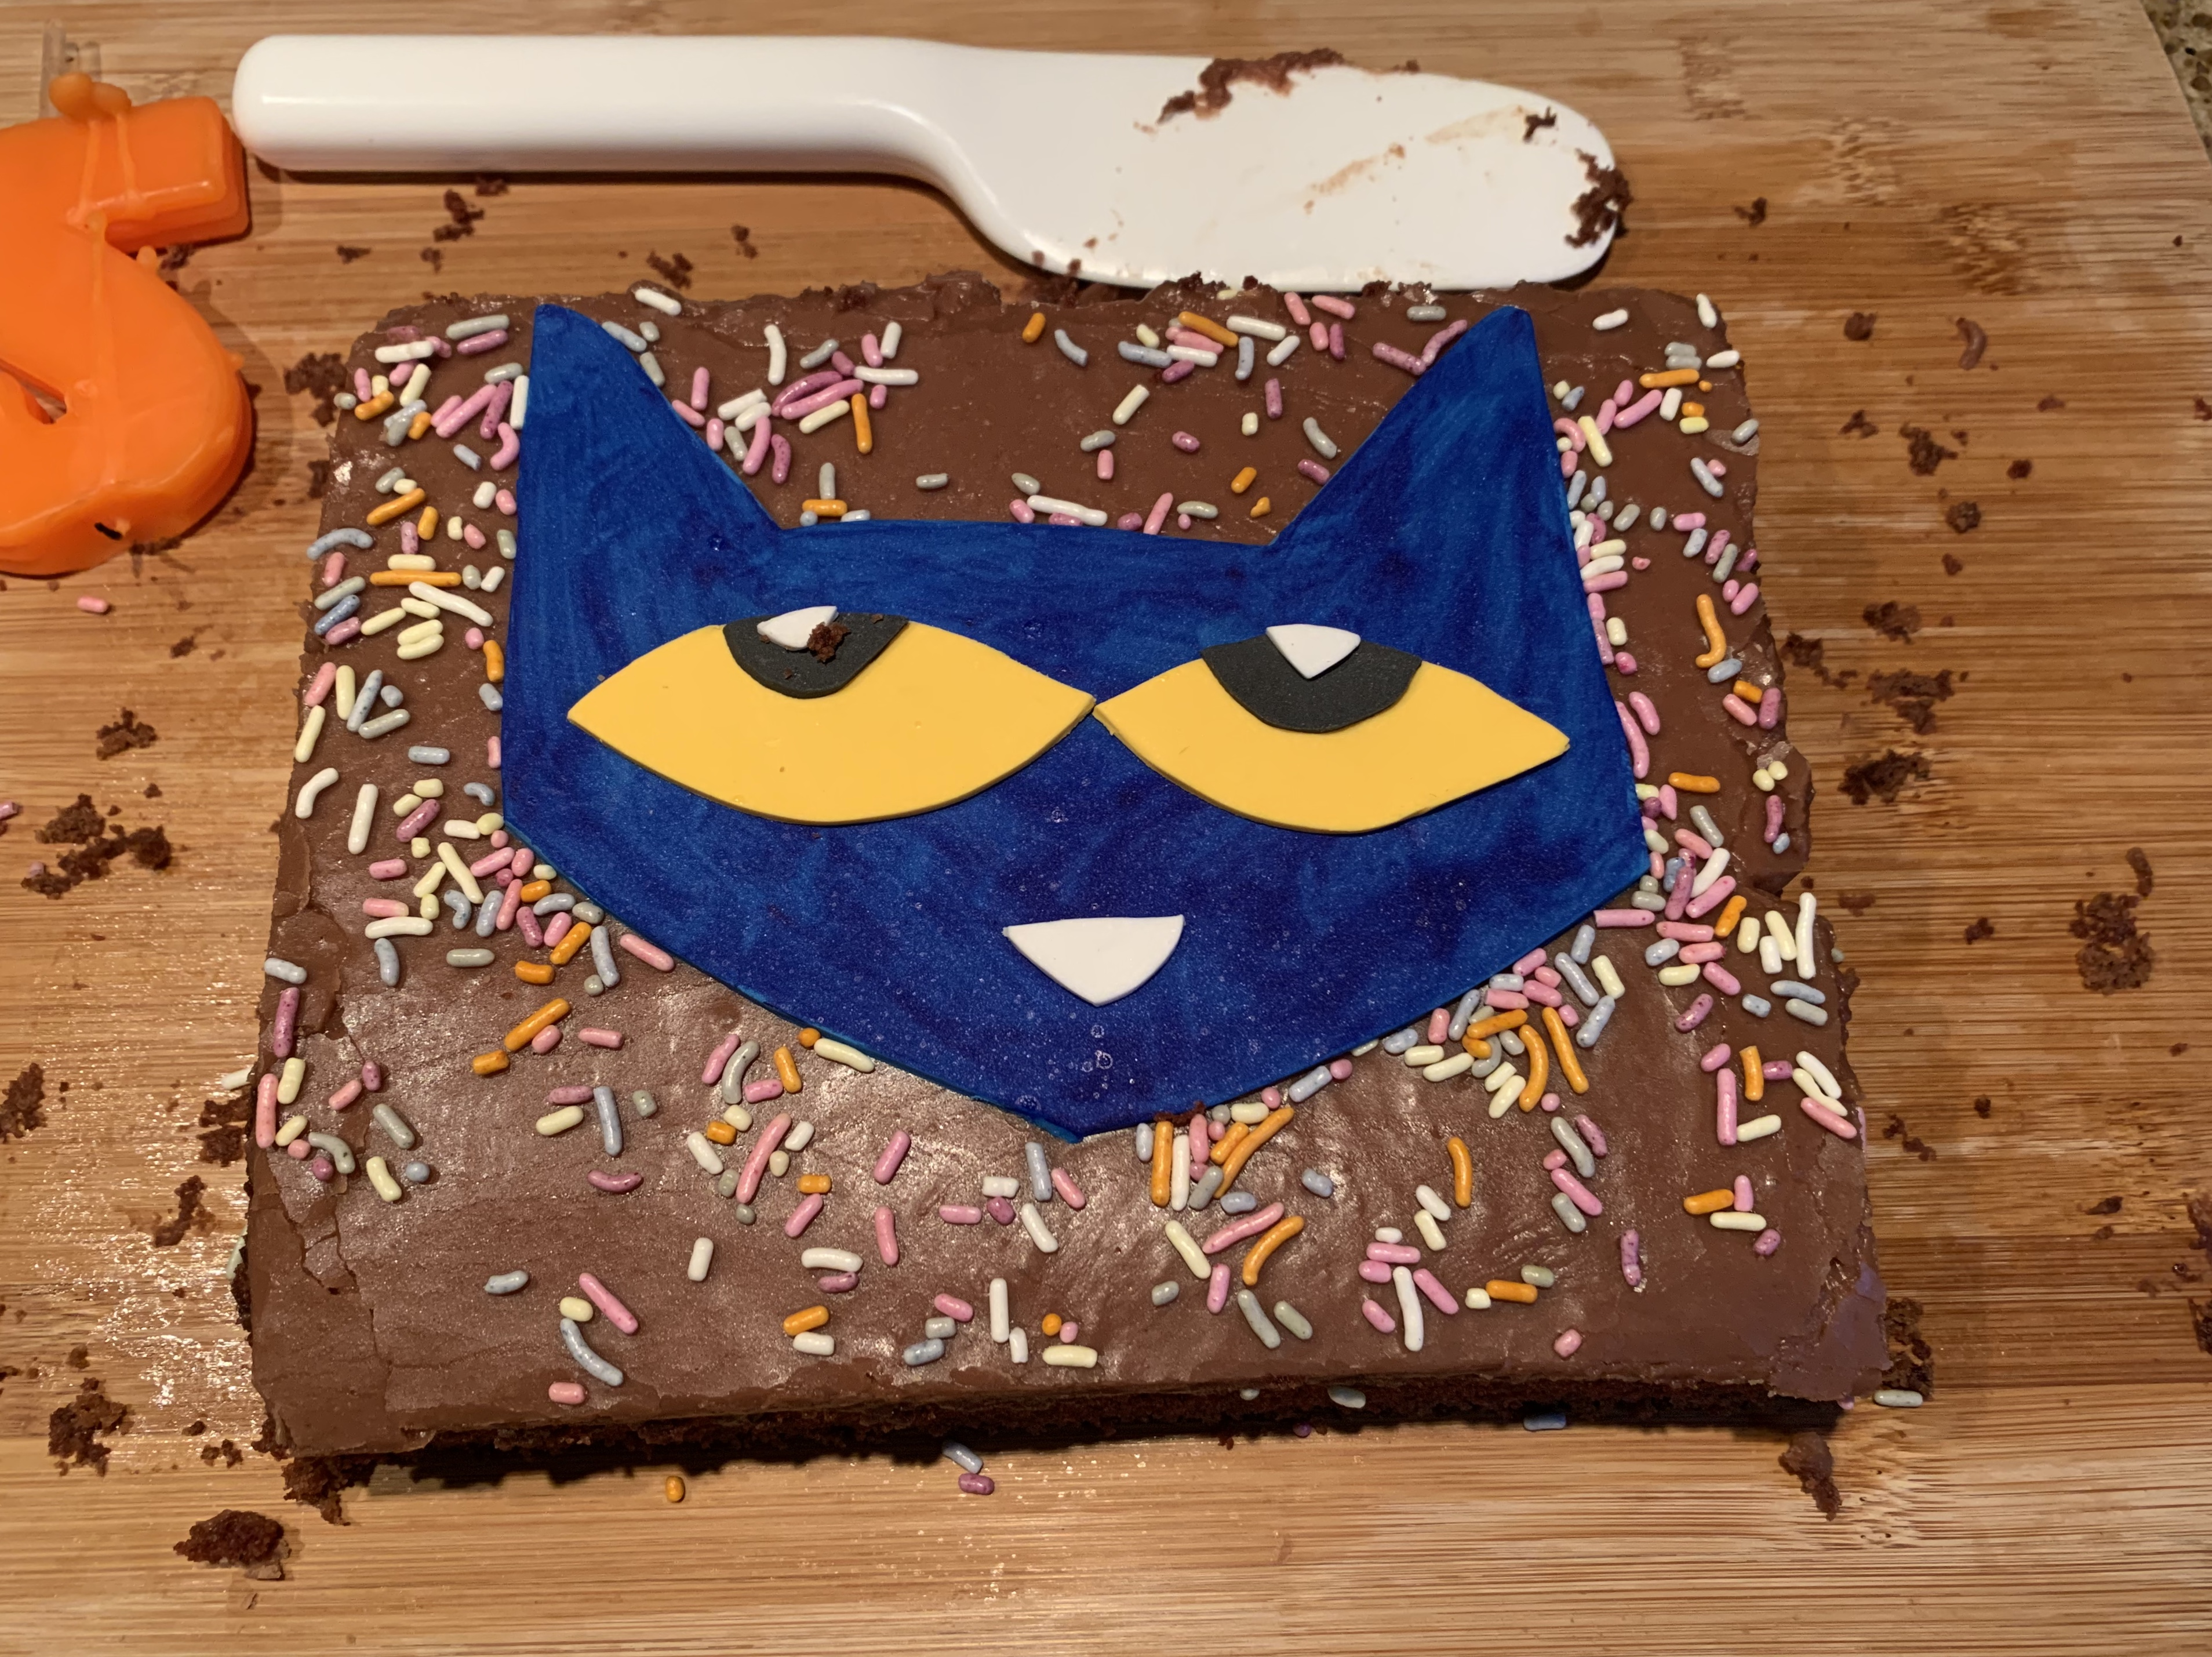 Remarkable Pete The Cat Cake Baking Making And Crafting Funny Birthday Cards Online Drosicarndamsfinfo